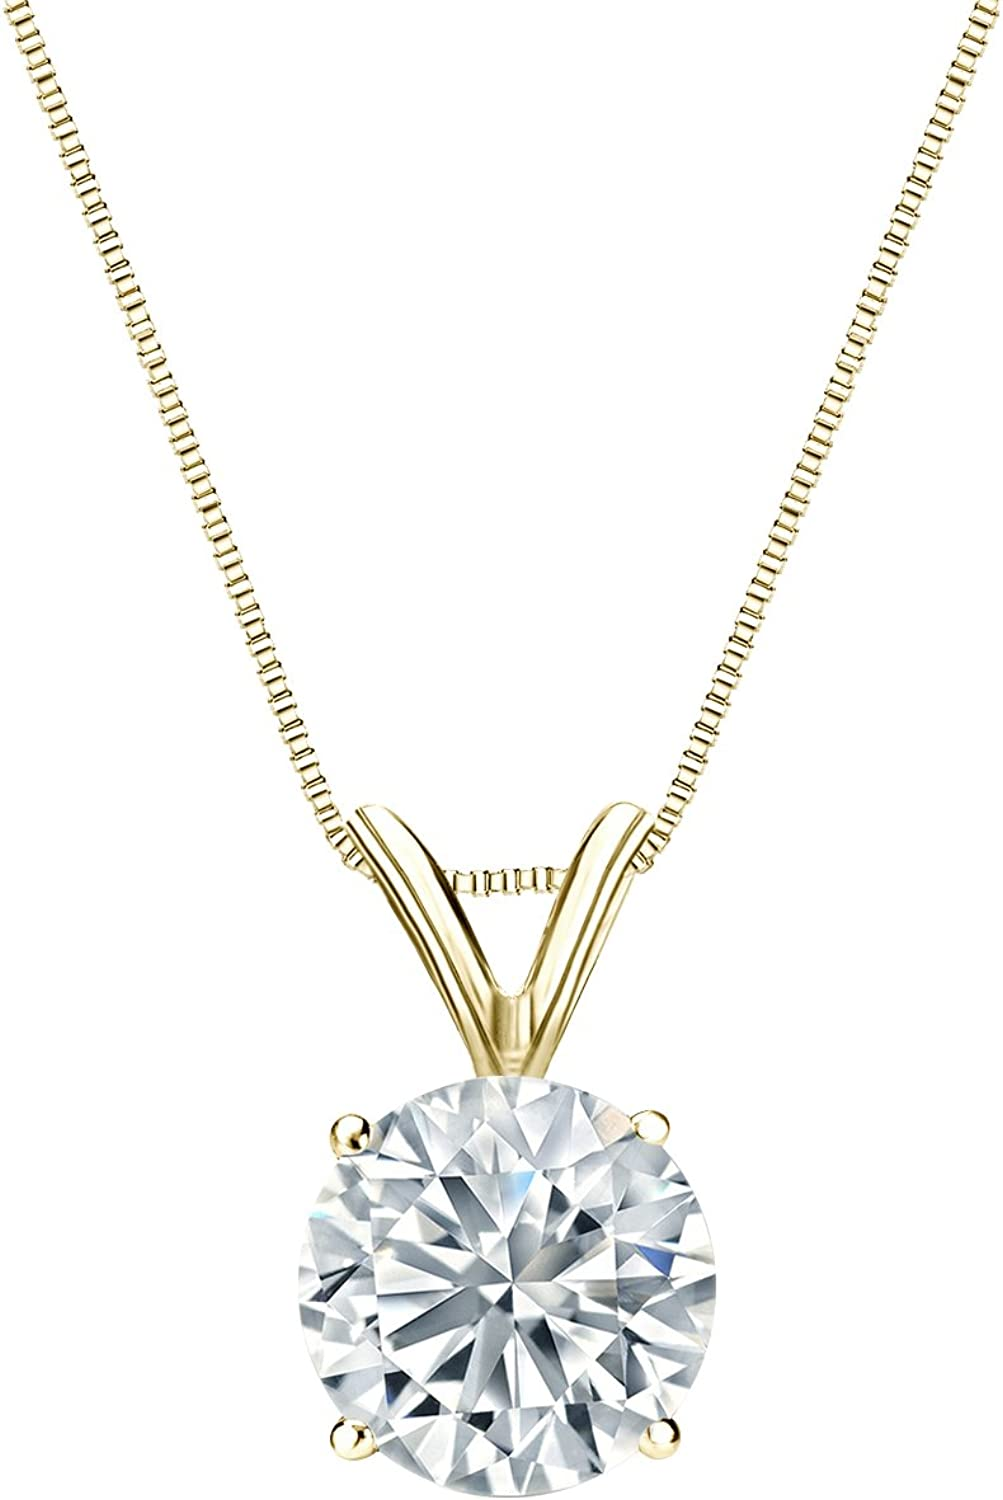 5 ☆ very popular Diamond Wish 14k Yellow Gold Nec Pendant Round Solitaire Sales of SALE items from new works